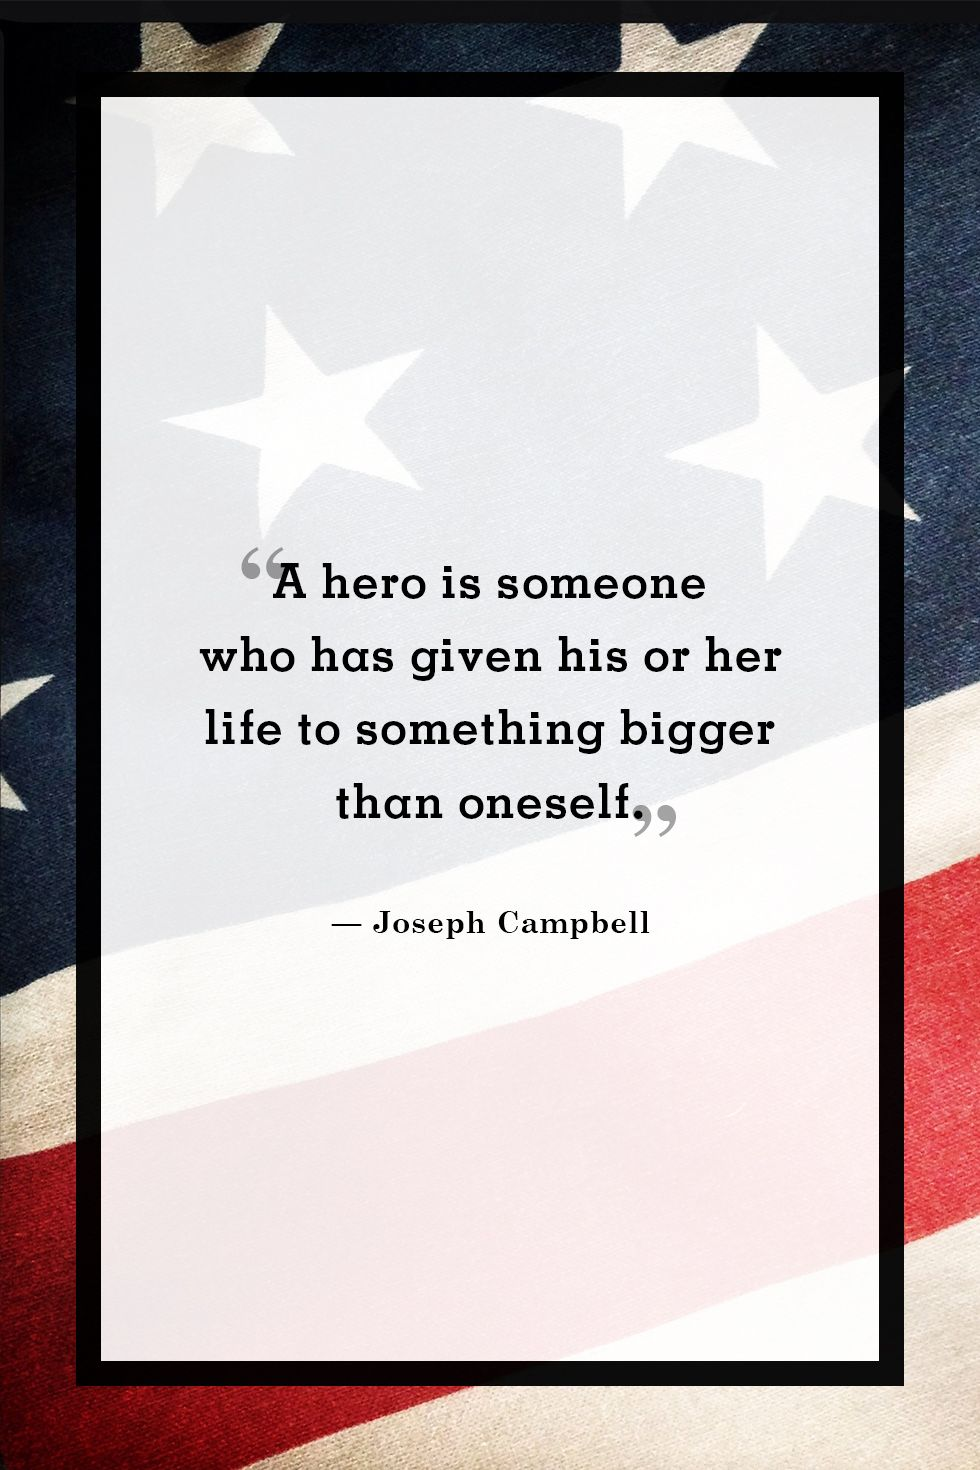 Fallen Soldier Quotes Classy 10 Famous Memorial Day Quotes That Honor America's Fallen Heroes